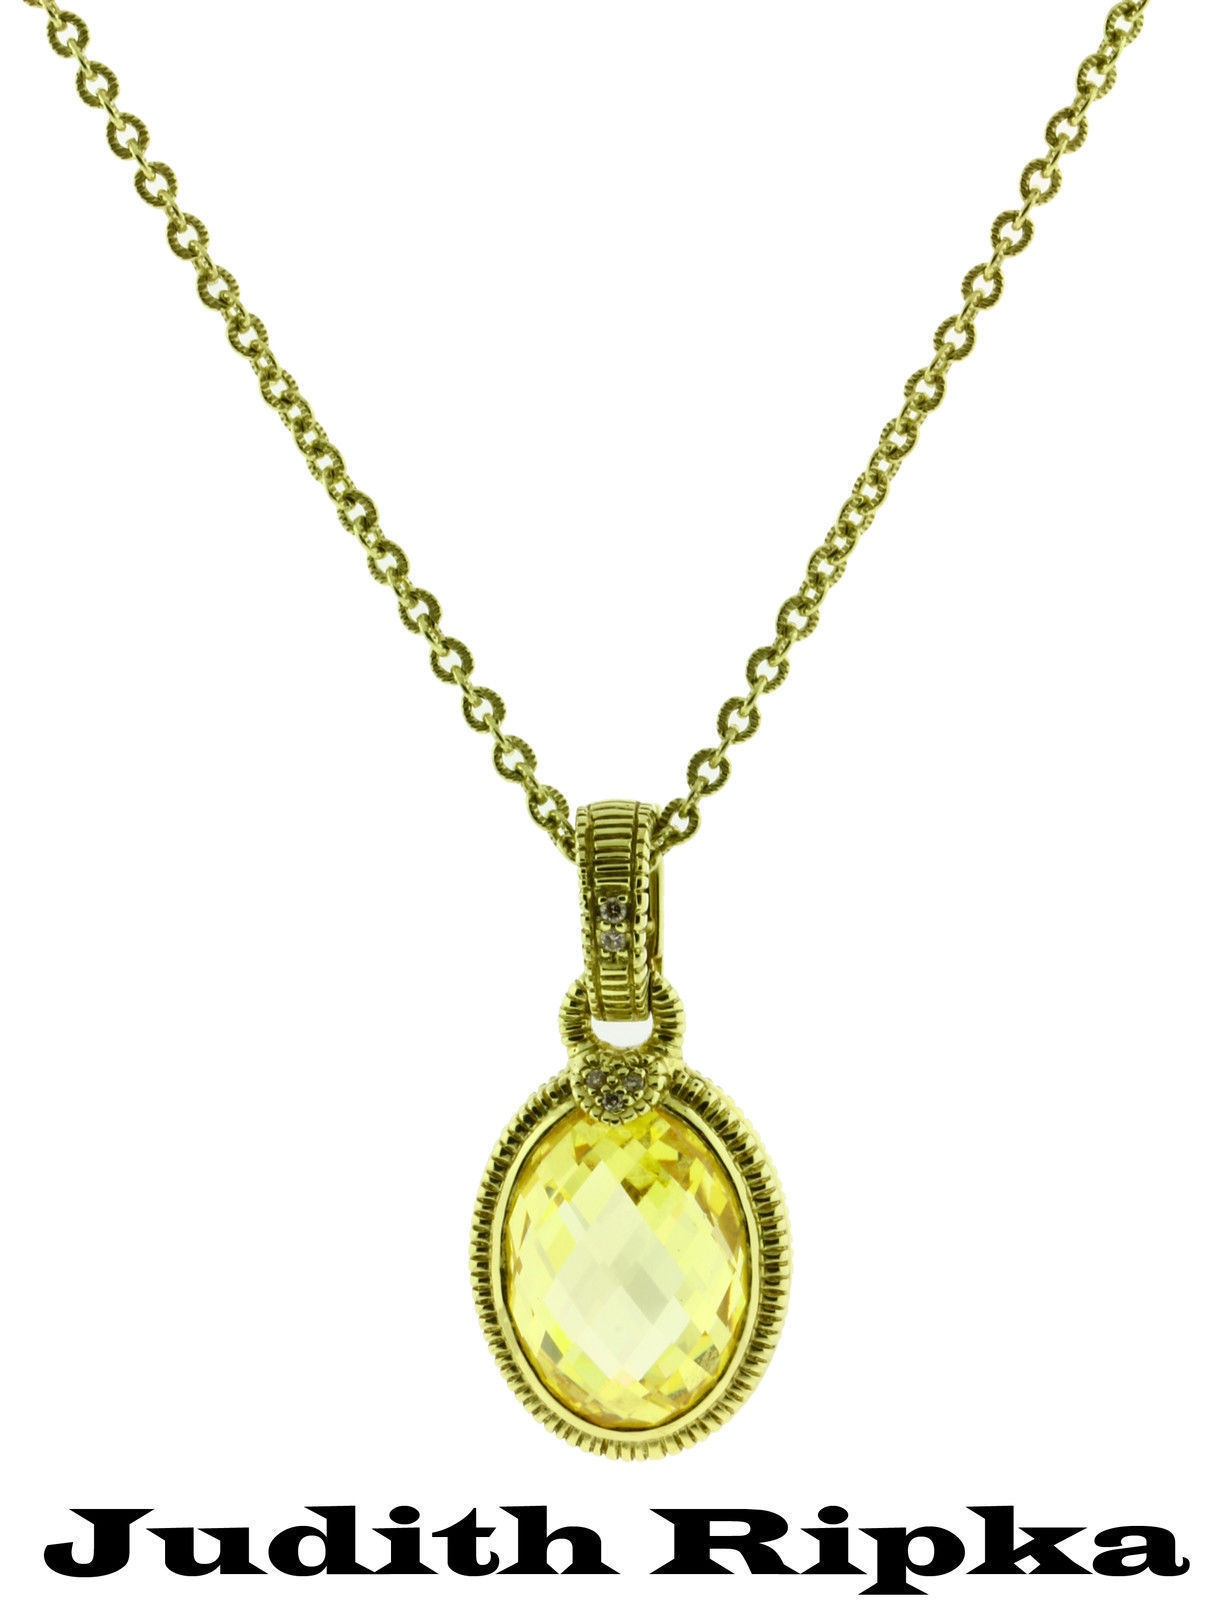 gold pendant jewelry necklaces sale diamond heart canary id and v quartz necklace more l for ripka judith